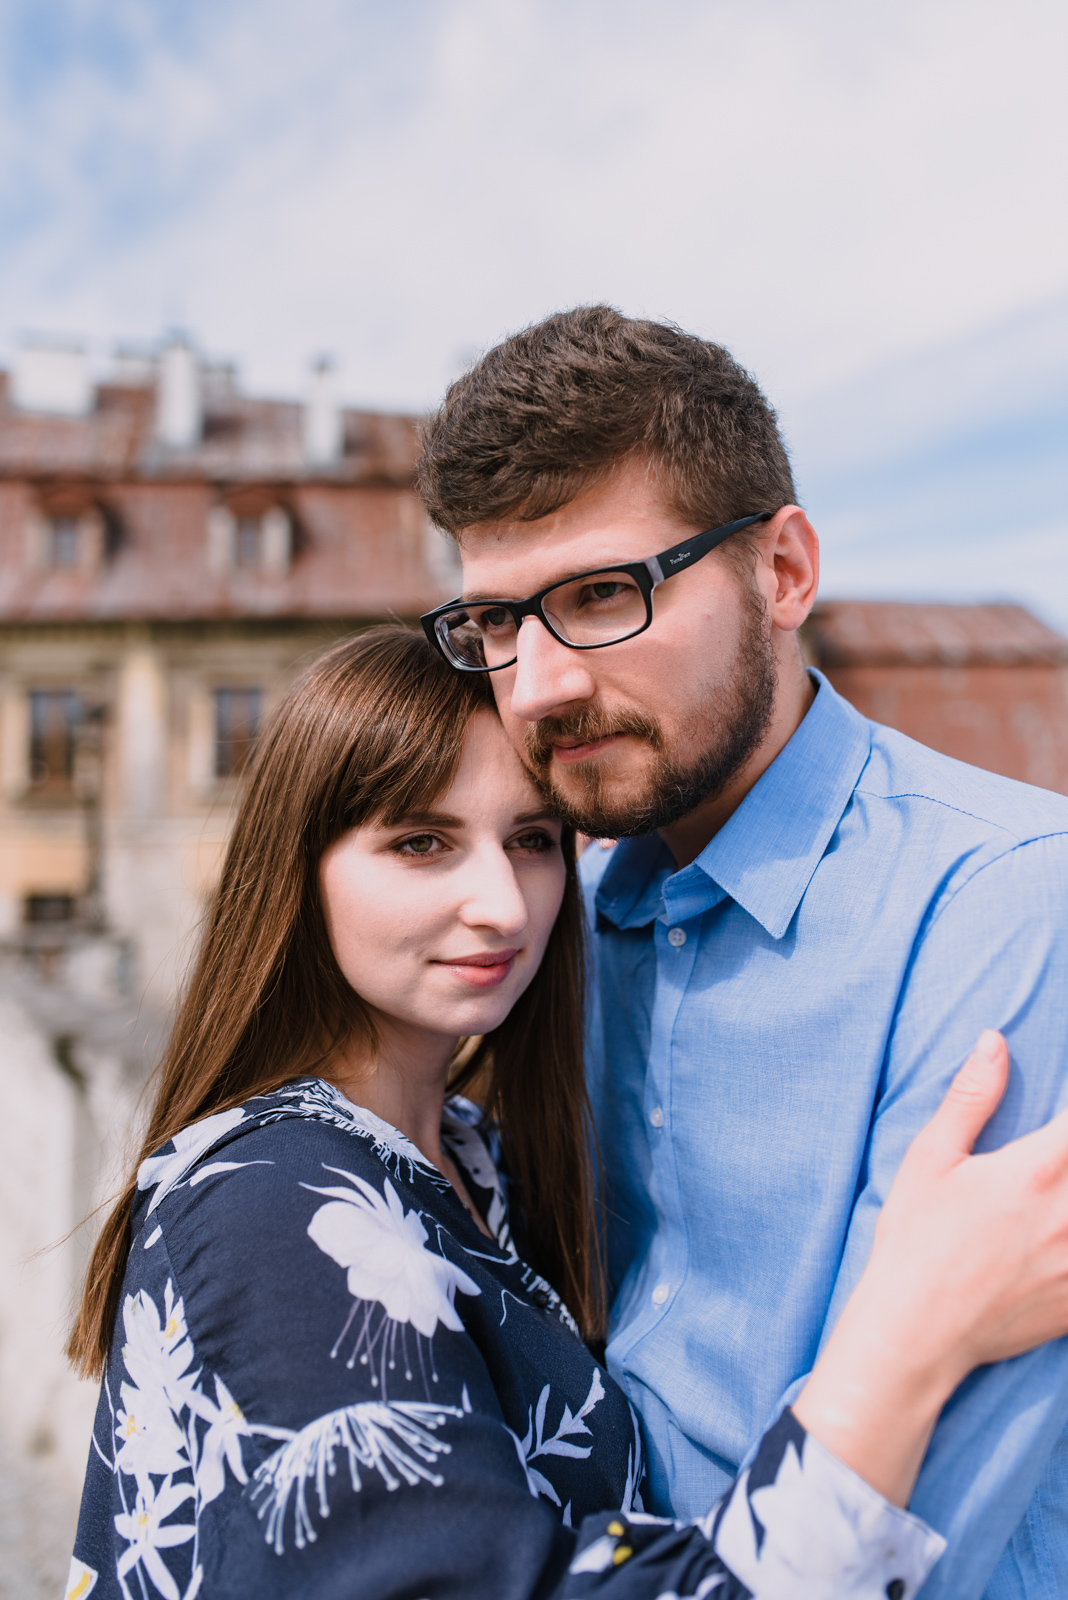 engagement shoot in Lublin Poland, summer engagement shoot in the city, old town engagement photos taken by Hello, Sugar Destination Wedding Photography-10.jpg